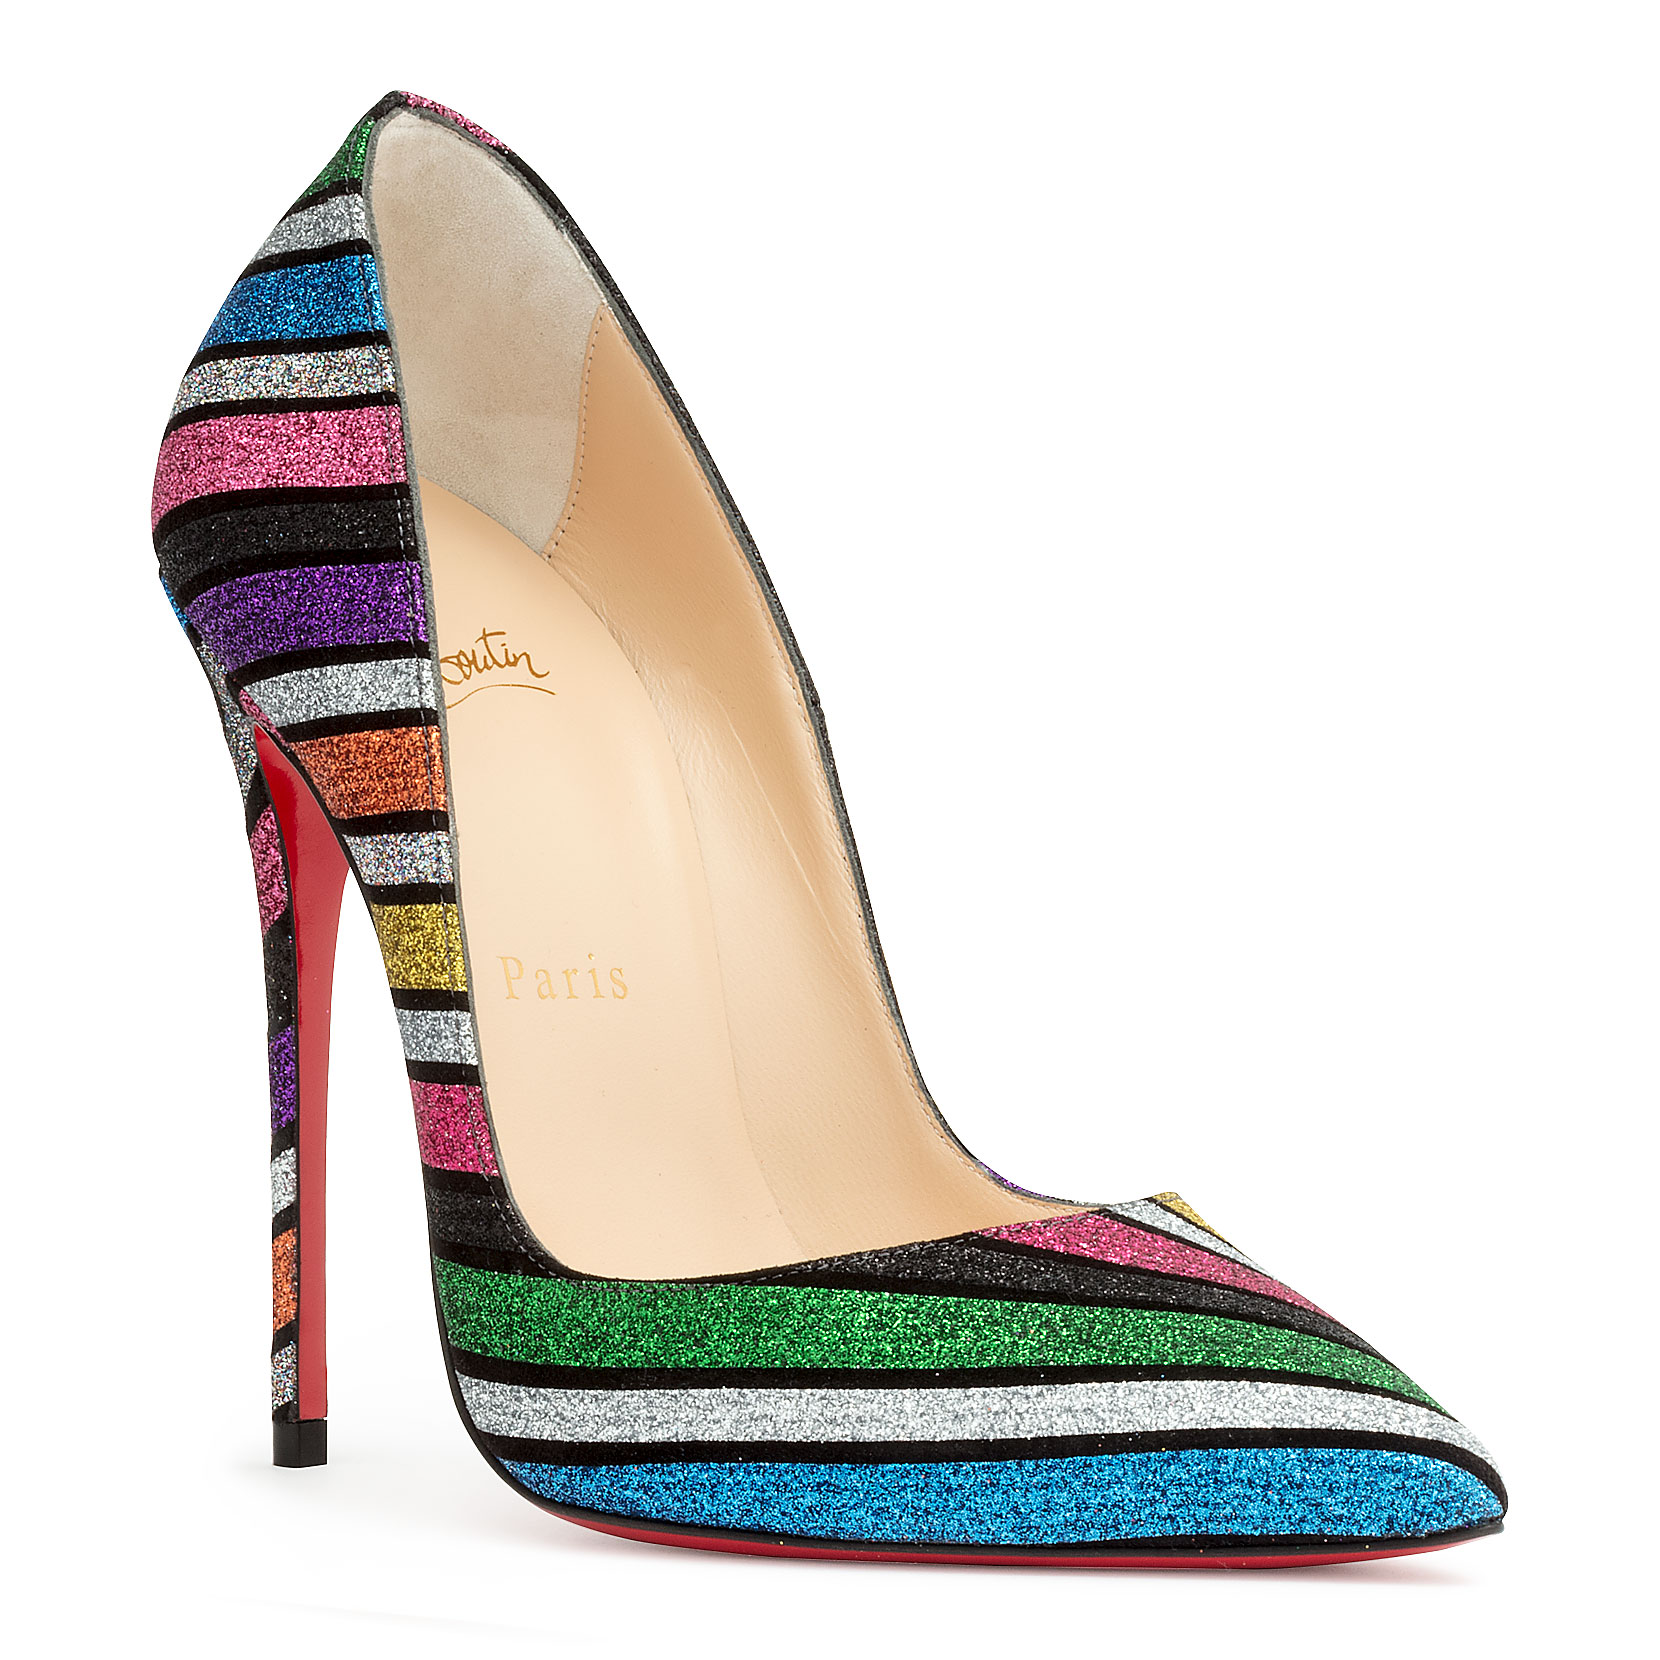 54f899810043 Christian Louboutin So Kate 120 Stripey Glitter Suede Red Sole Pumps In  Multi